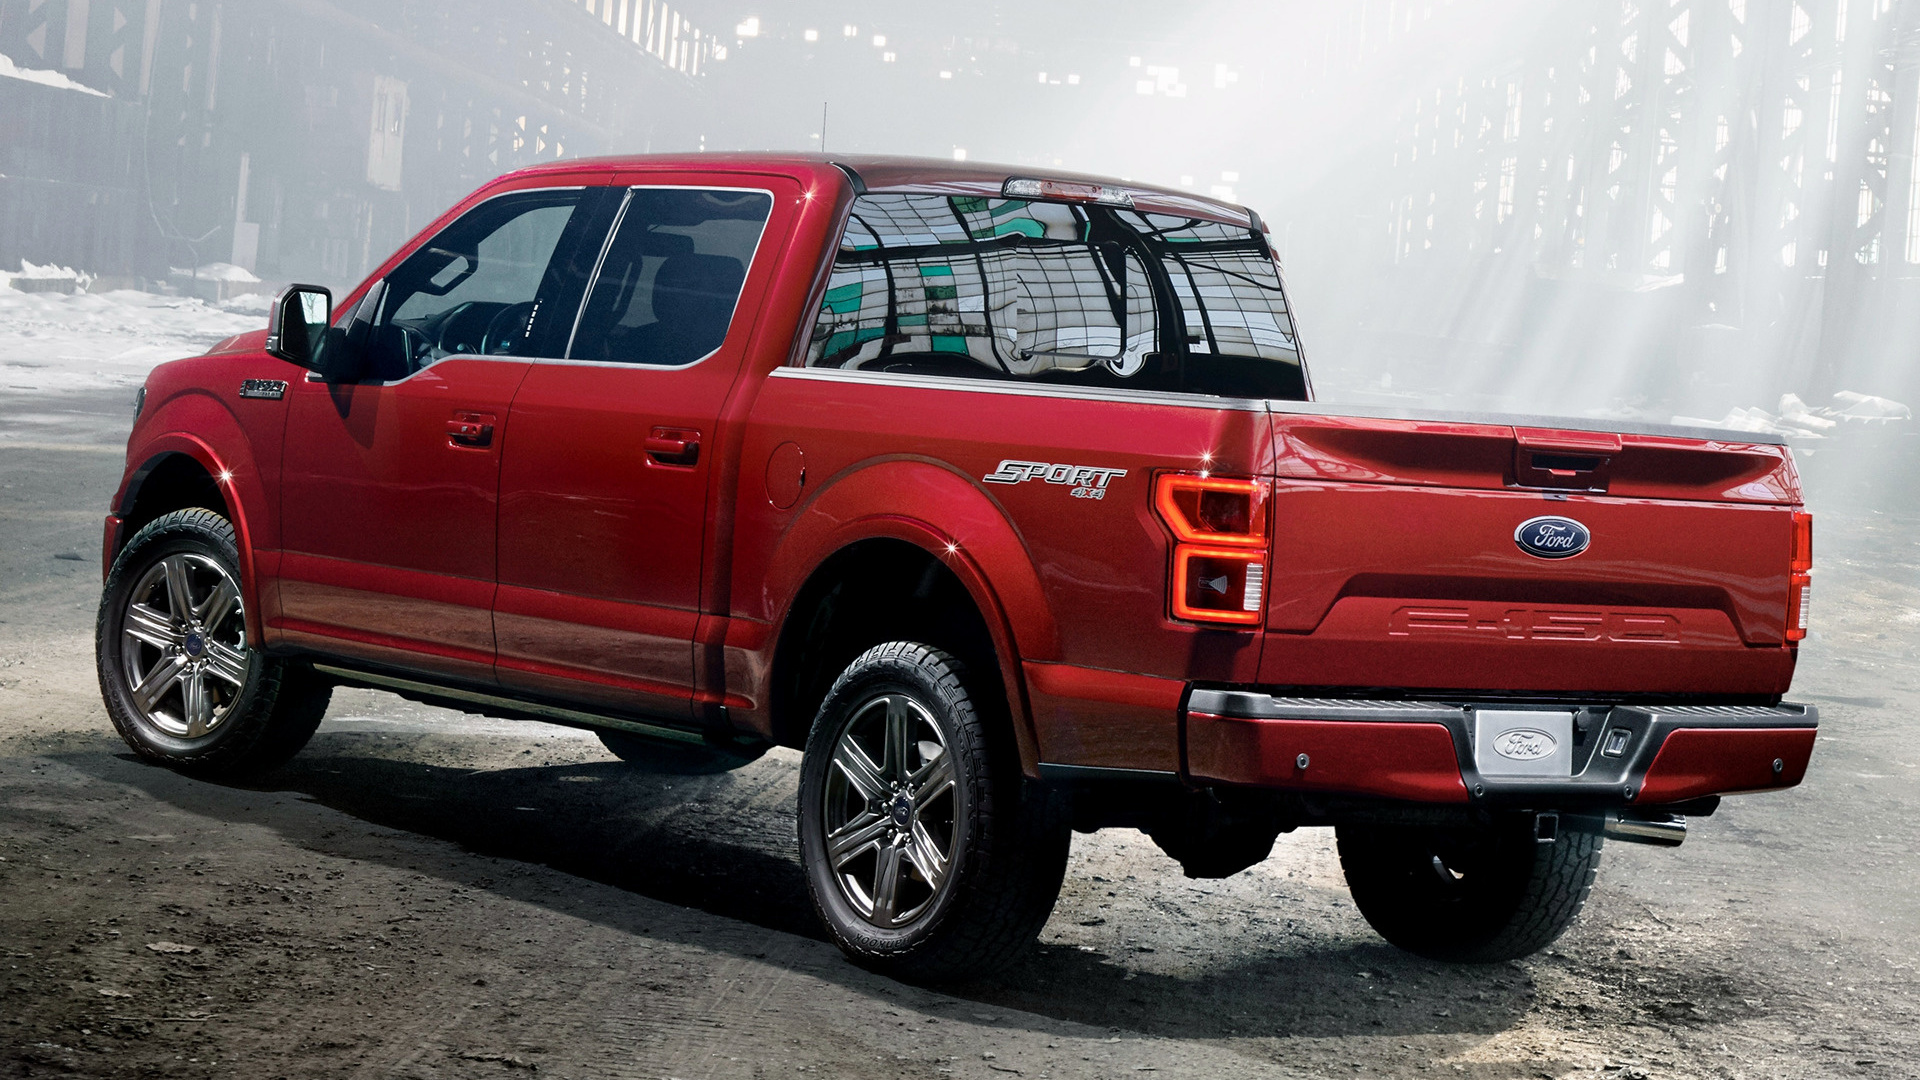 Ford F150 Crew Cab >> 2018 Ford F-150 Lariat Sport SuperCrew - Wallpapers and HD Images | Car Pixel